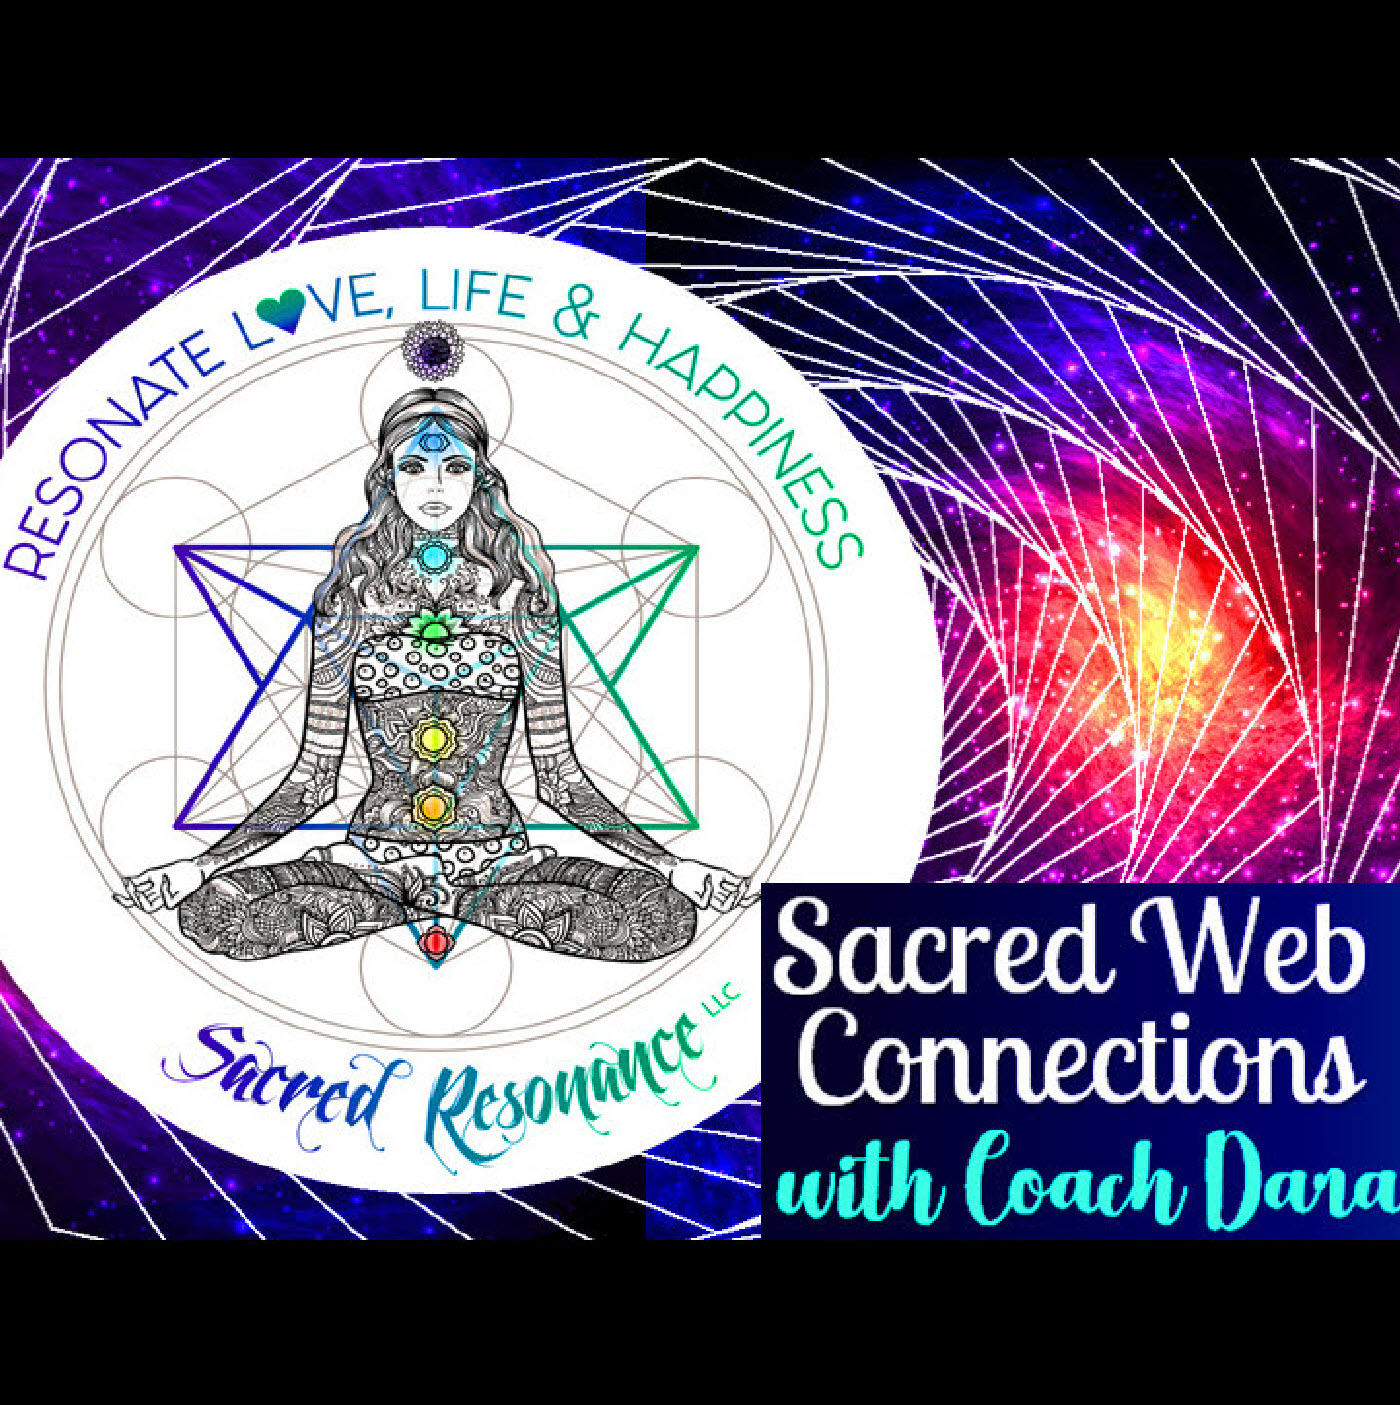 Sacred Web Connections with Coach Dara